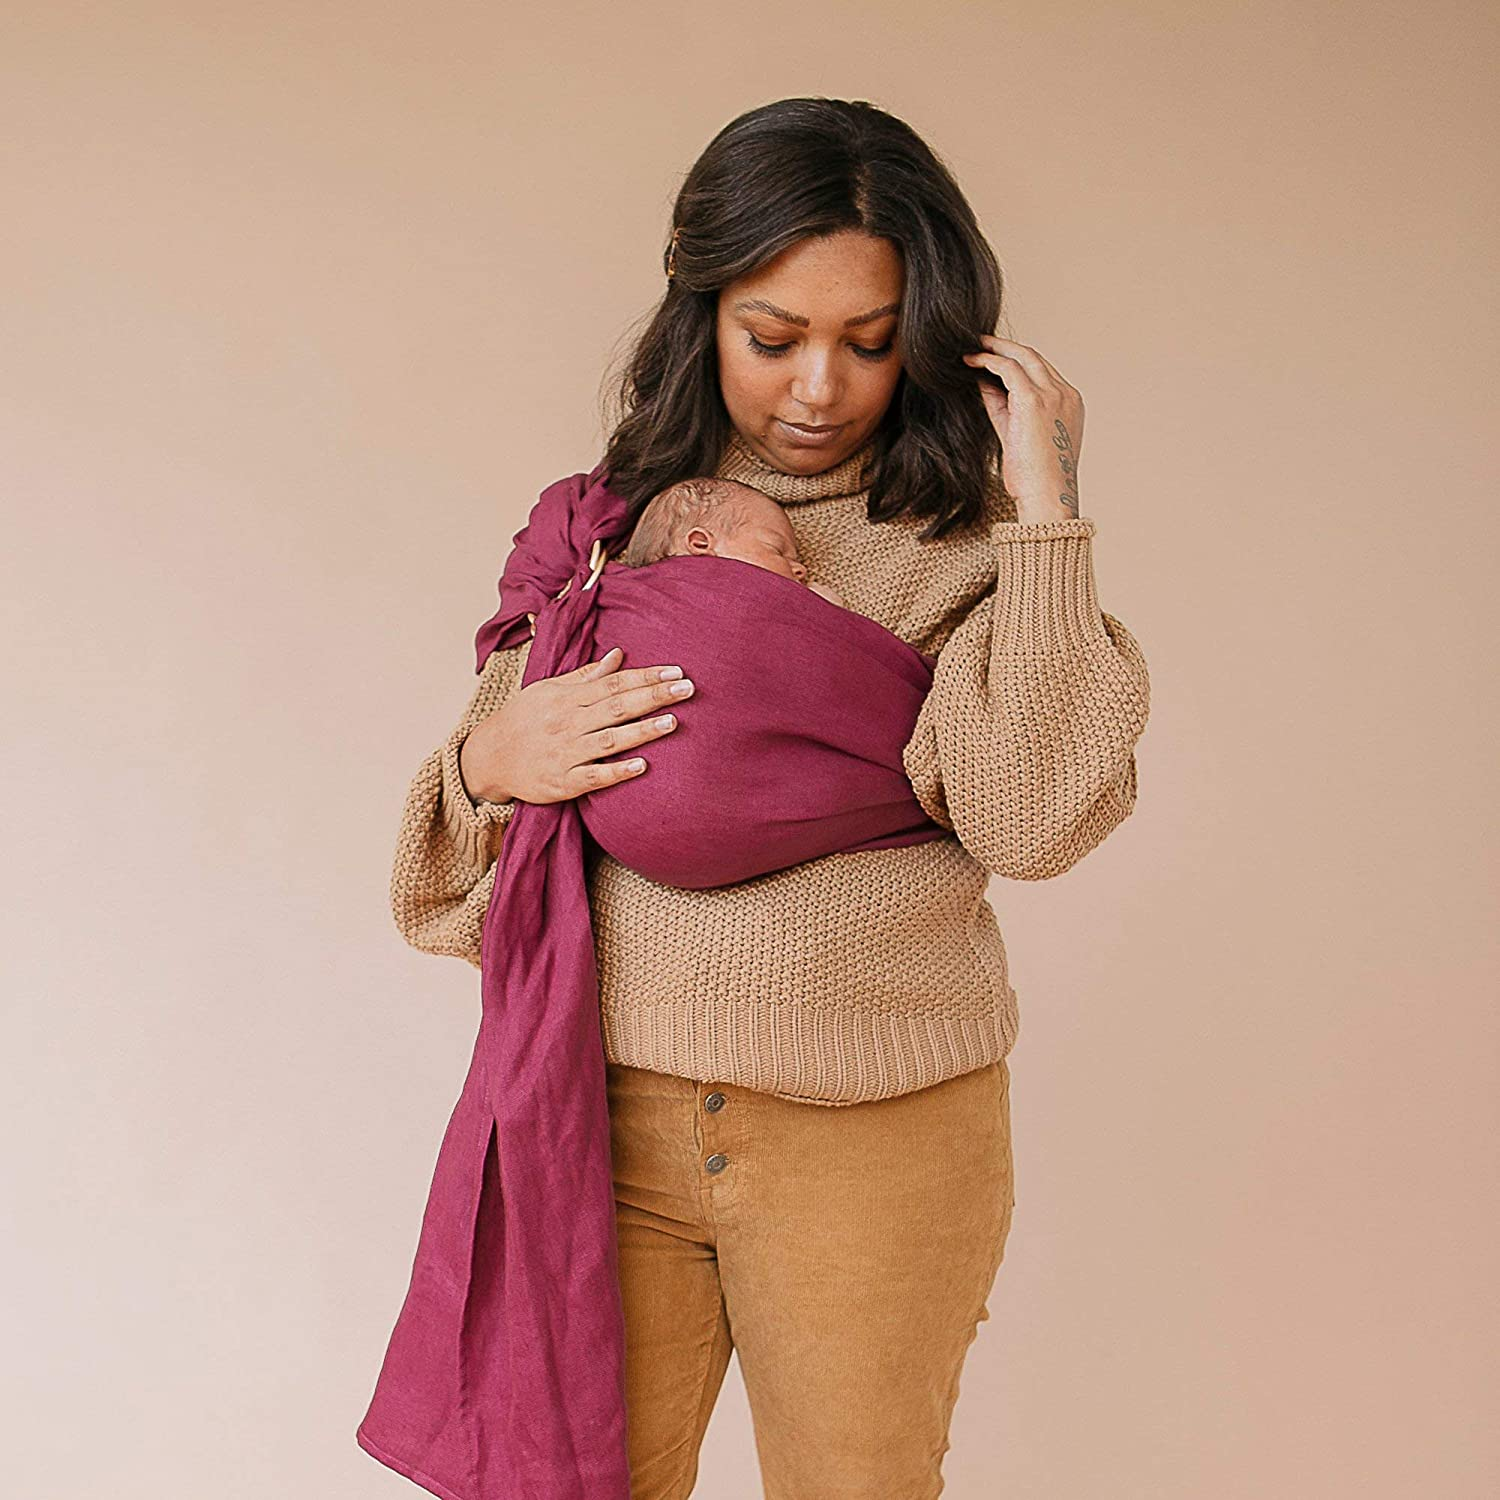 WildBird Ring Sling Baby Carrier Made from 100/% Belgian Linen Newborns to Toddlers - Solid Color Owl Fabric//Rose Gold Ring